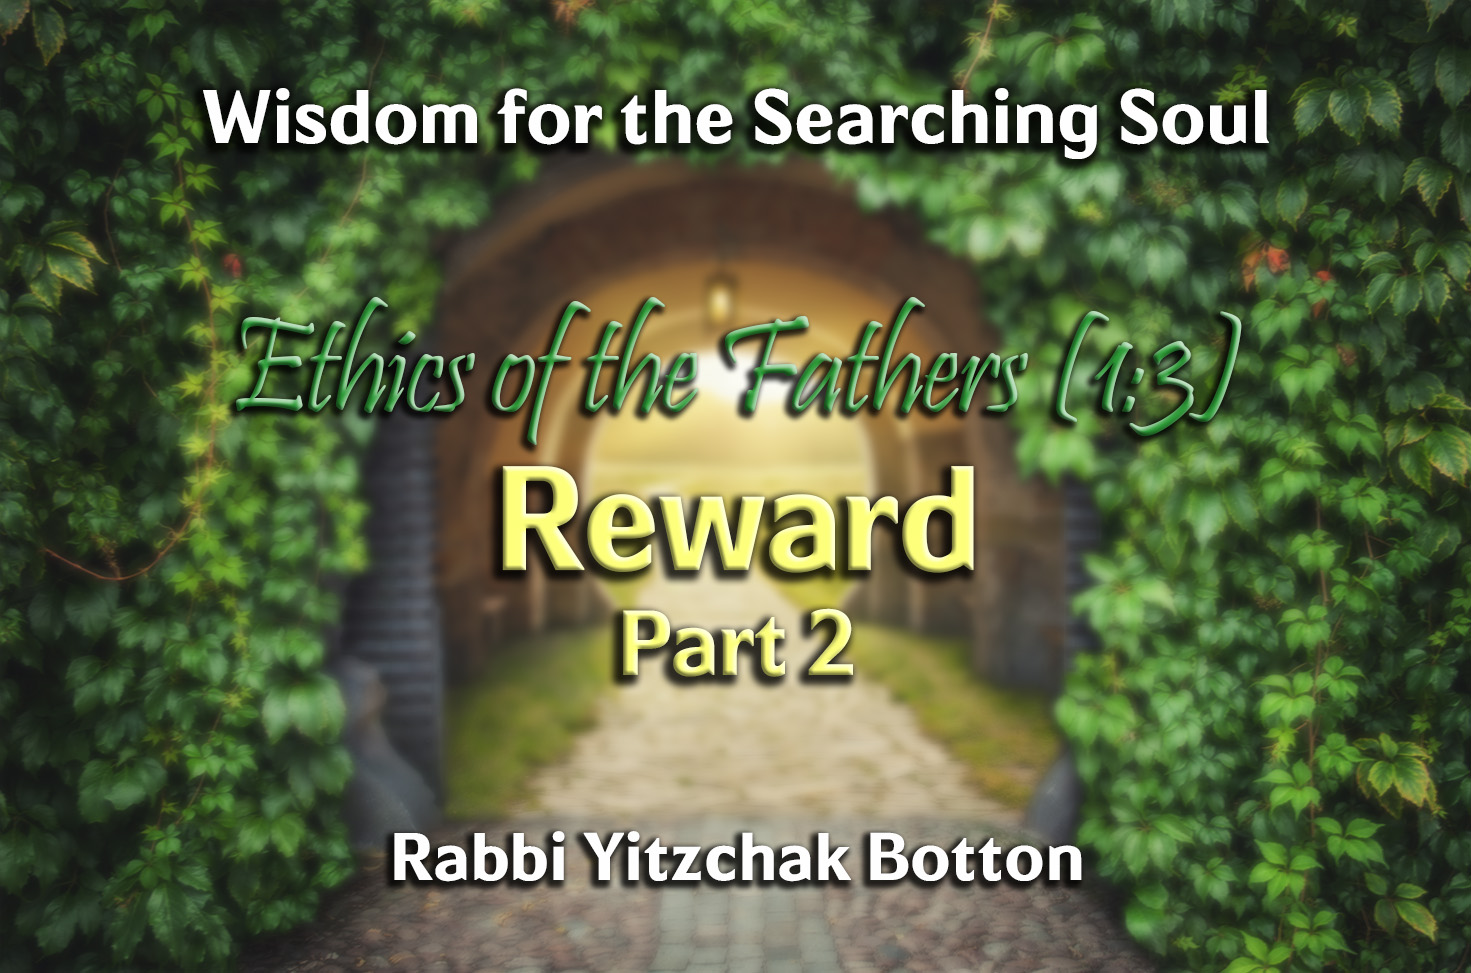 Photo of Reward – Part 2 – Ethics of the Fathers (1:3)